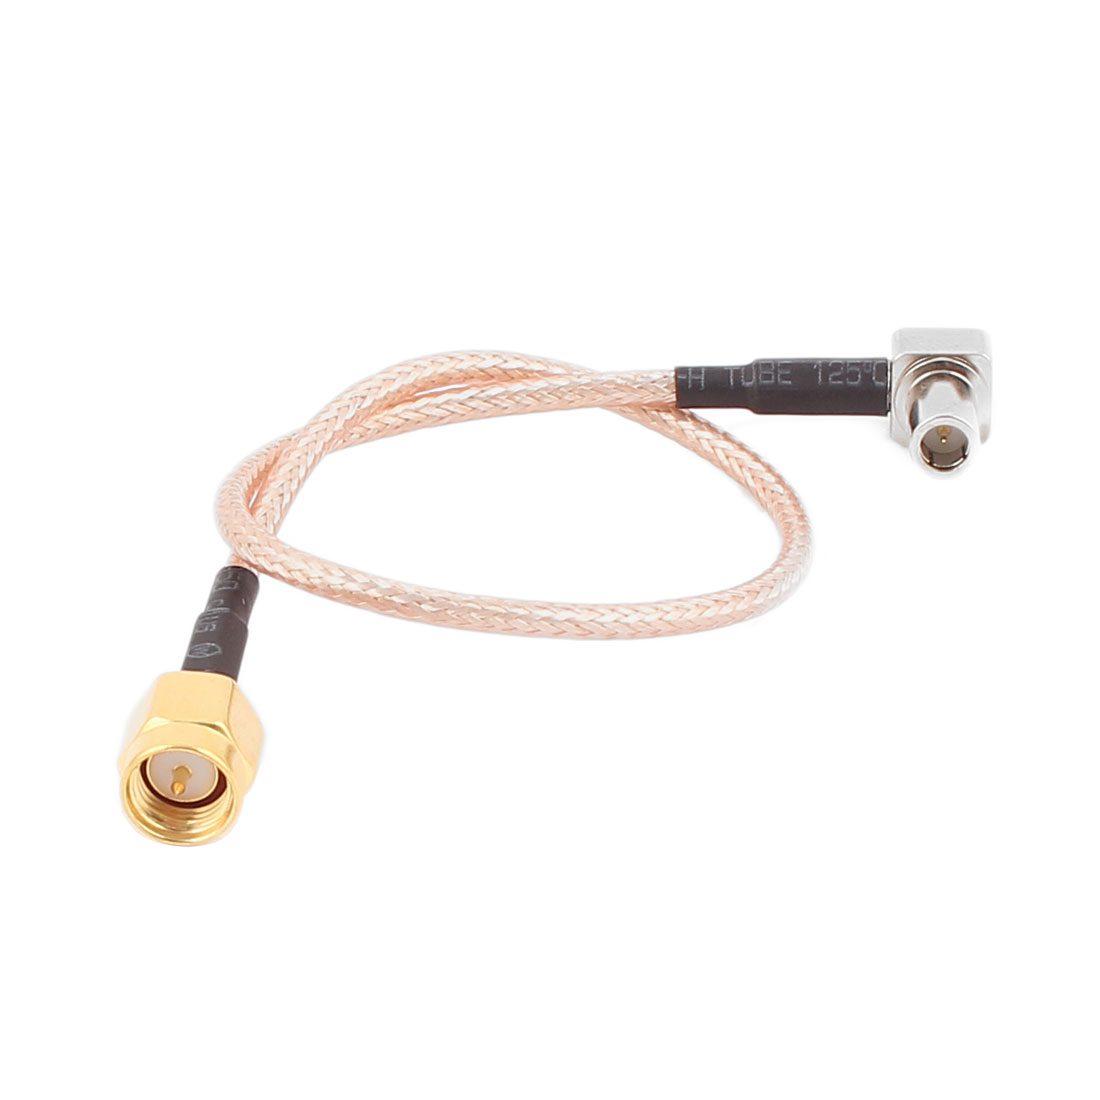 MS147 Male to SMA-J Male RG316 Coaxial Cable Pigtail 20cm